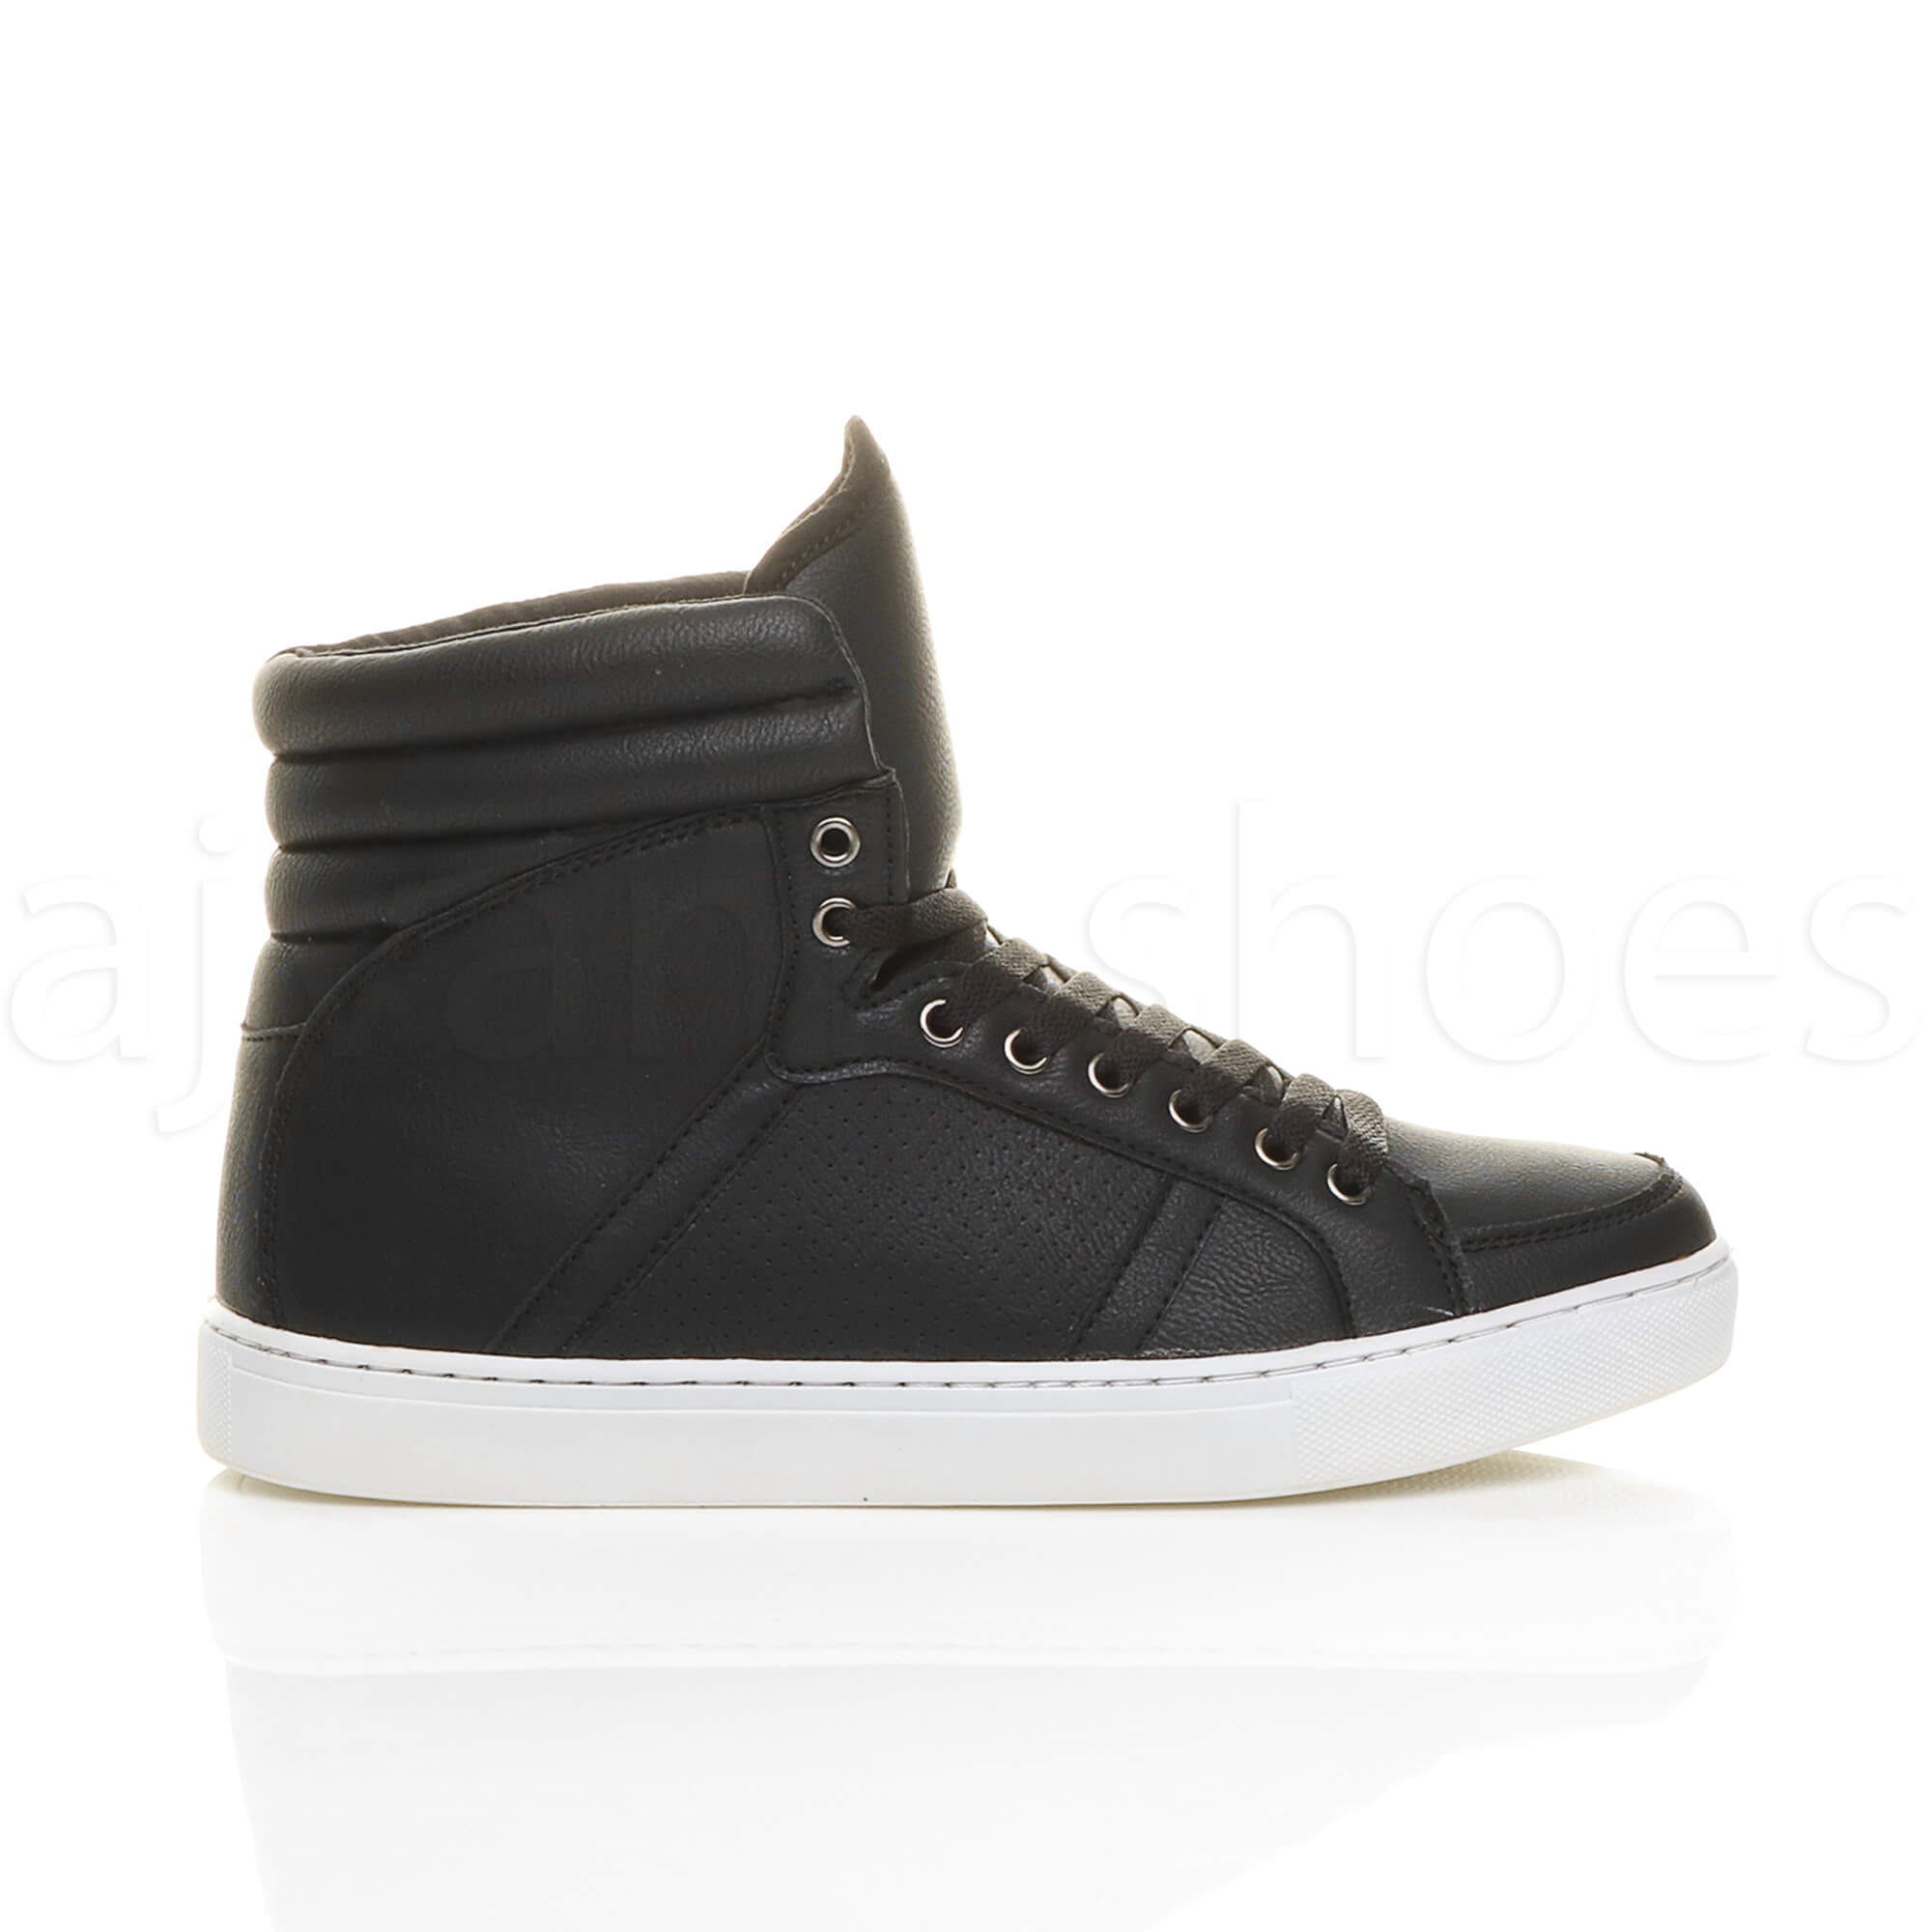 MENS-LACE-UP-CASUAL-FLAT-HI-HIGH-TOP-ANKLE-BOOTS-SHOES-TRAINERS-SNEAKERS-SIZE thumbnail 3